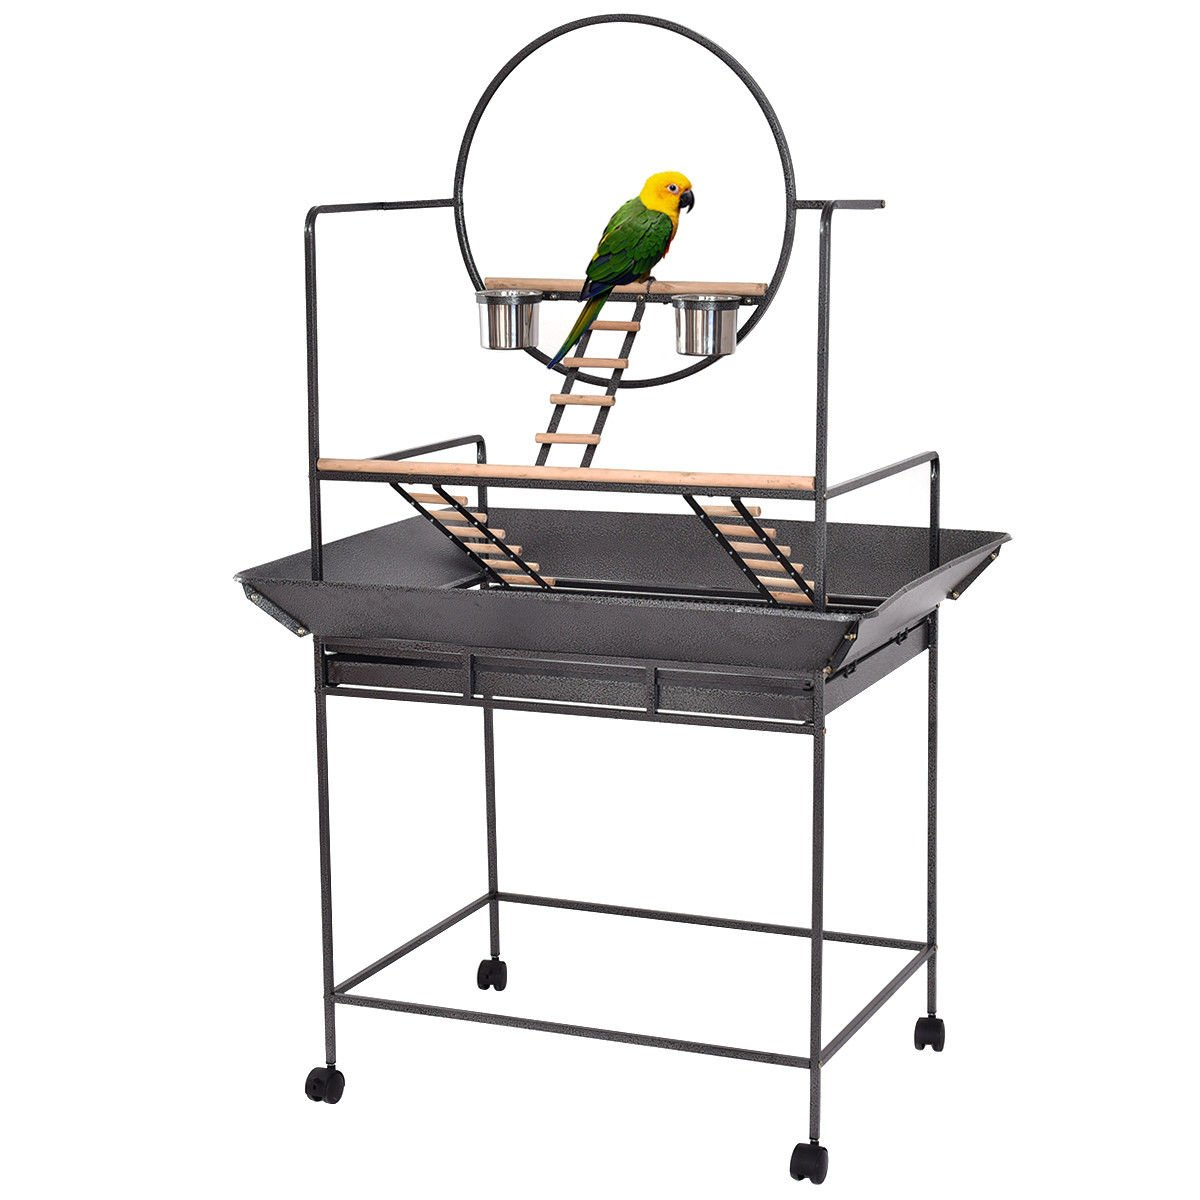 Giantex Parrot Play Stand Bird Cage Gym Perch with Play Ring Ladders and Feeding Cups Rolling Casters PS6993